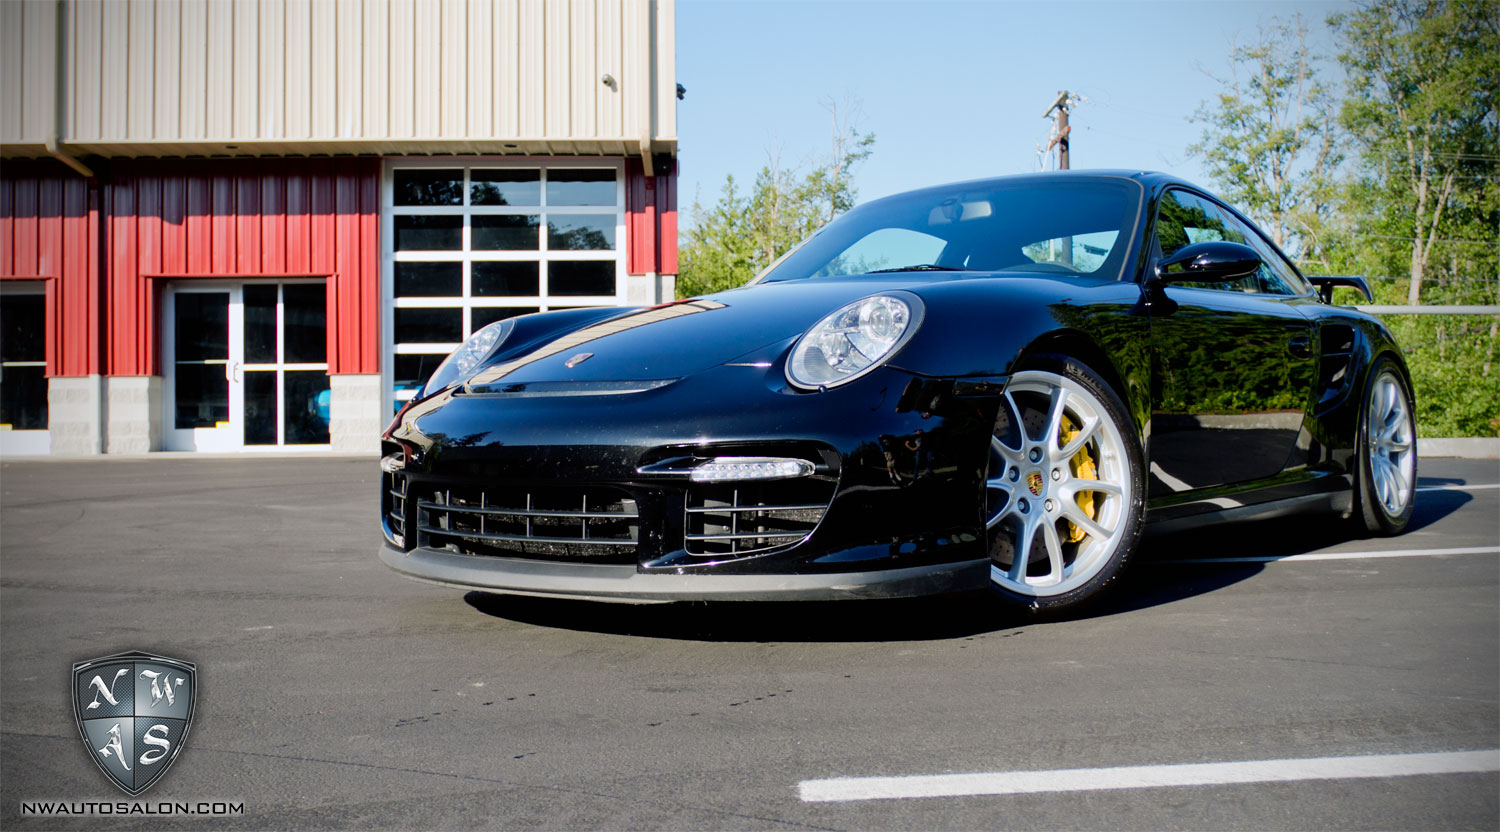 Porsche 997 Gt2 Enthusiast Detail Vaccuuming And Wipe